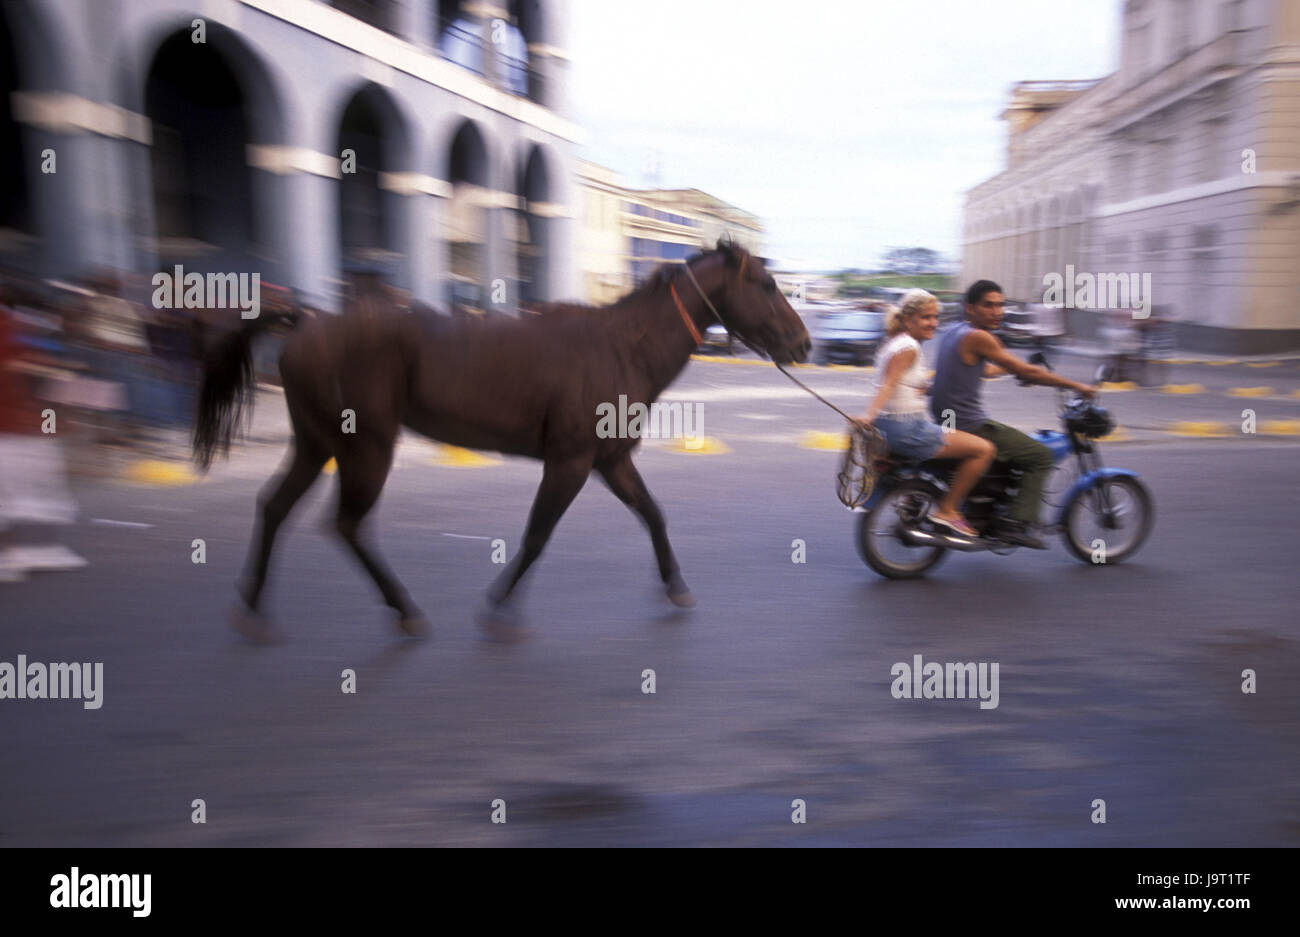 Cuba,Matanzas,plaza de la Vigia,couple,motorbike,cord,horse,lead along,no model release,Central America,street,moped Stock Photo